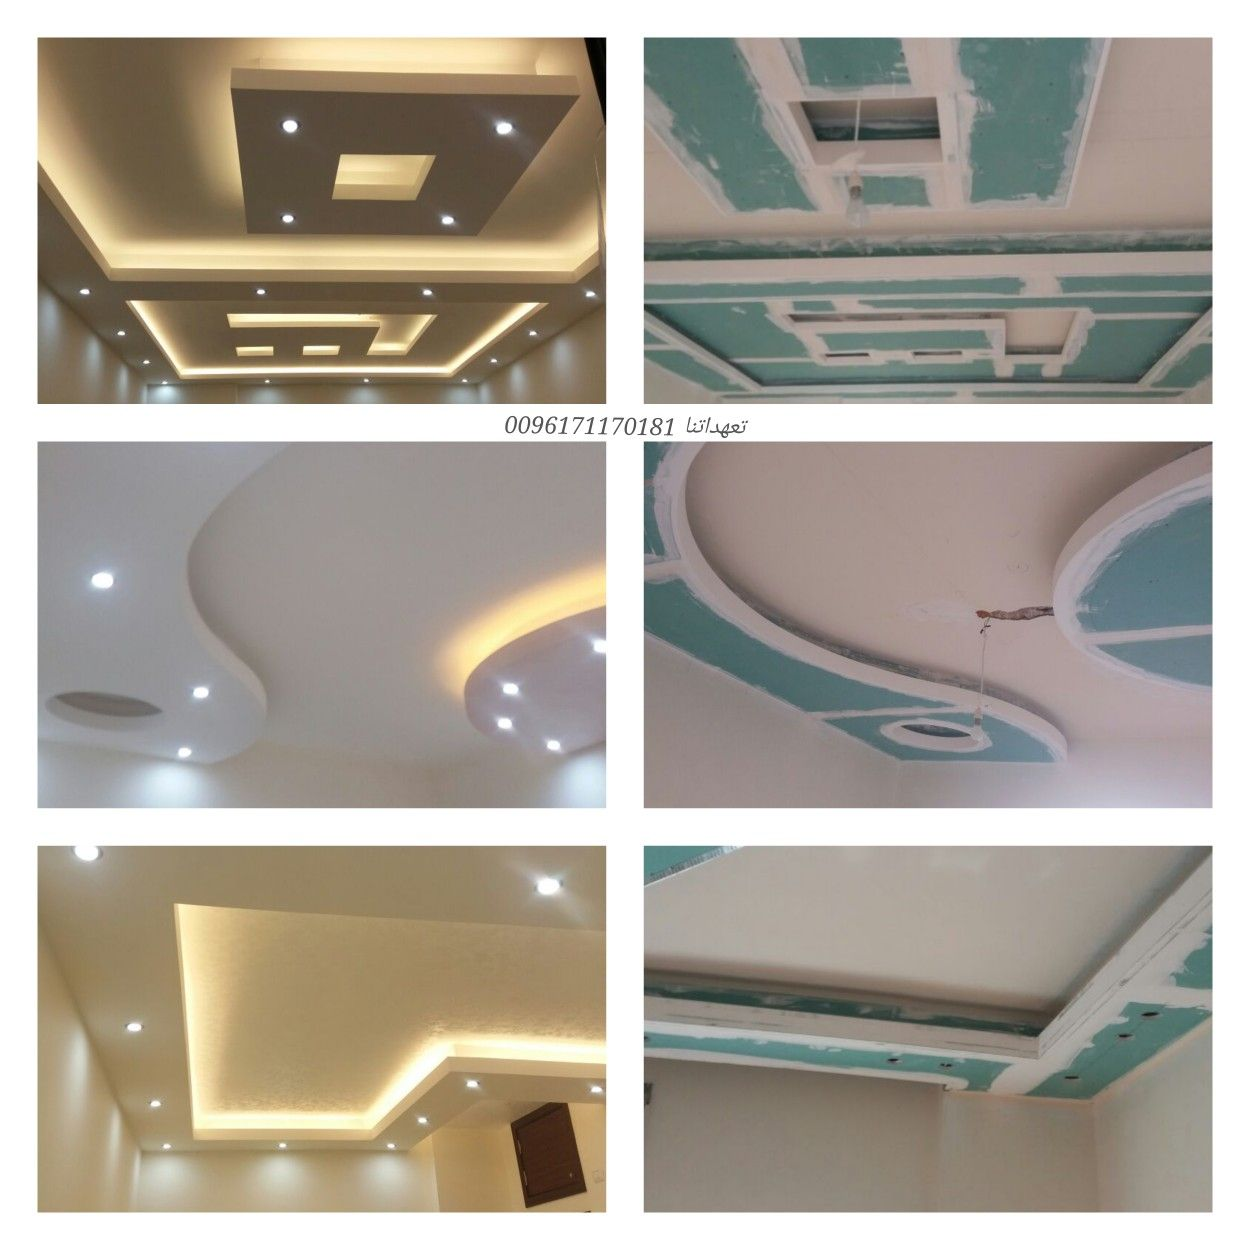 Gypsum Board Modern Design Decor Modern Gypsum Paint Pvc Wood ديكور جفصين حديث ديكور غرف نوم صالونات اسقف جفص Ceiling Design Modern Decor Design Modern Design